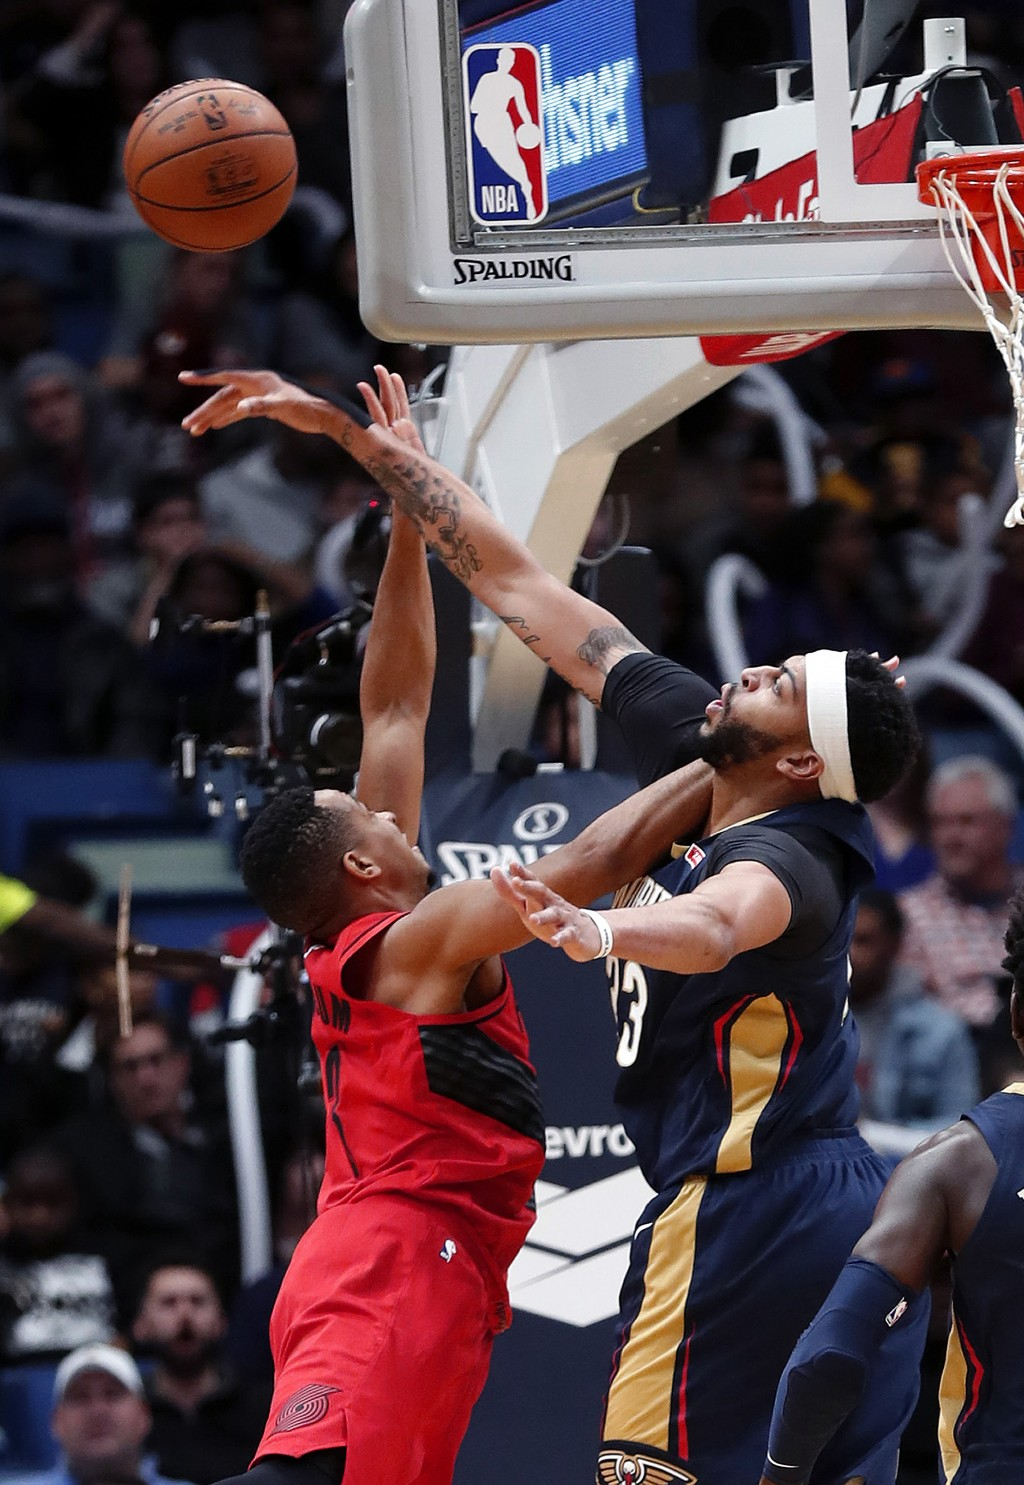 New Orleans Pelicans forward Anthony Davis, right, blocks a shot by Portland Trail Blazers guard CJ McCollum during the first half of an NBA basketbal